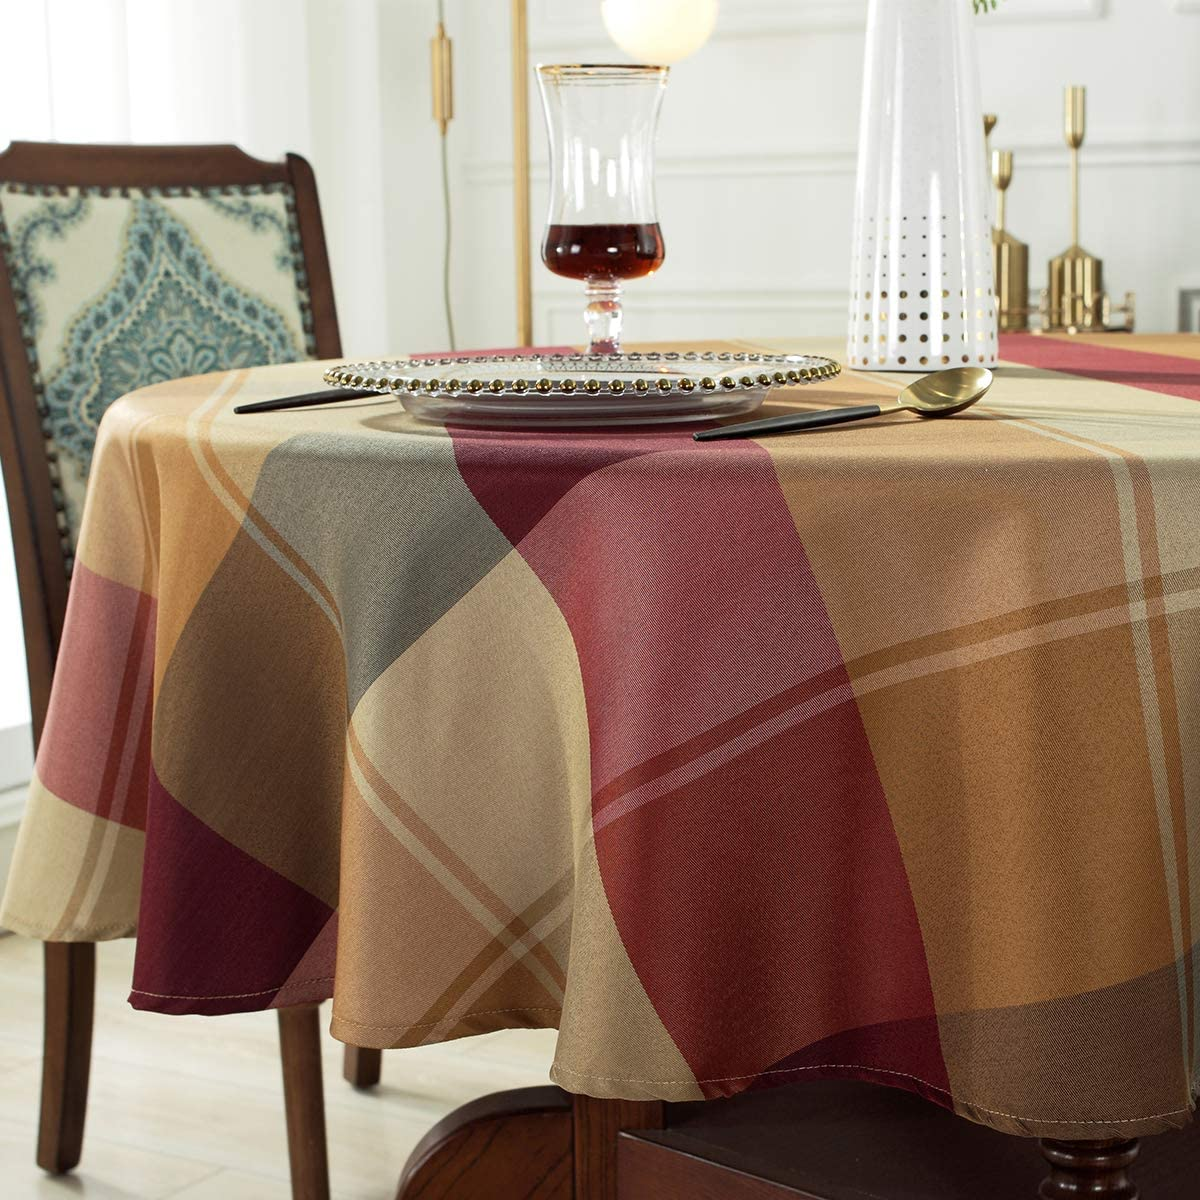 Round Tablecloth Checkered Style Polyester Table Cloth Spillproof Dust-Proof Wrinkle Resistant Heavy Weight Table Cover for Kitchen Dinning Tabletop (Square/Round, 52